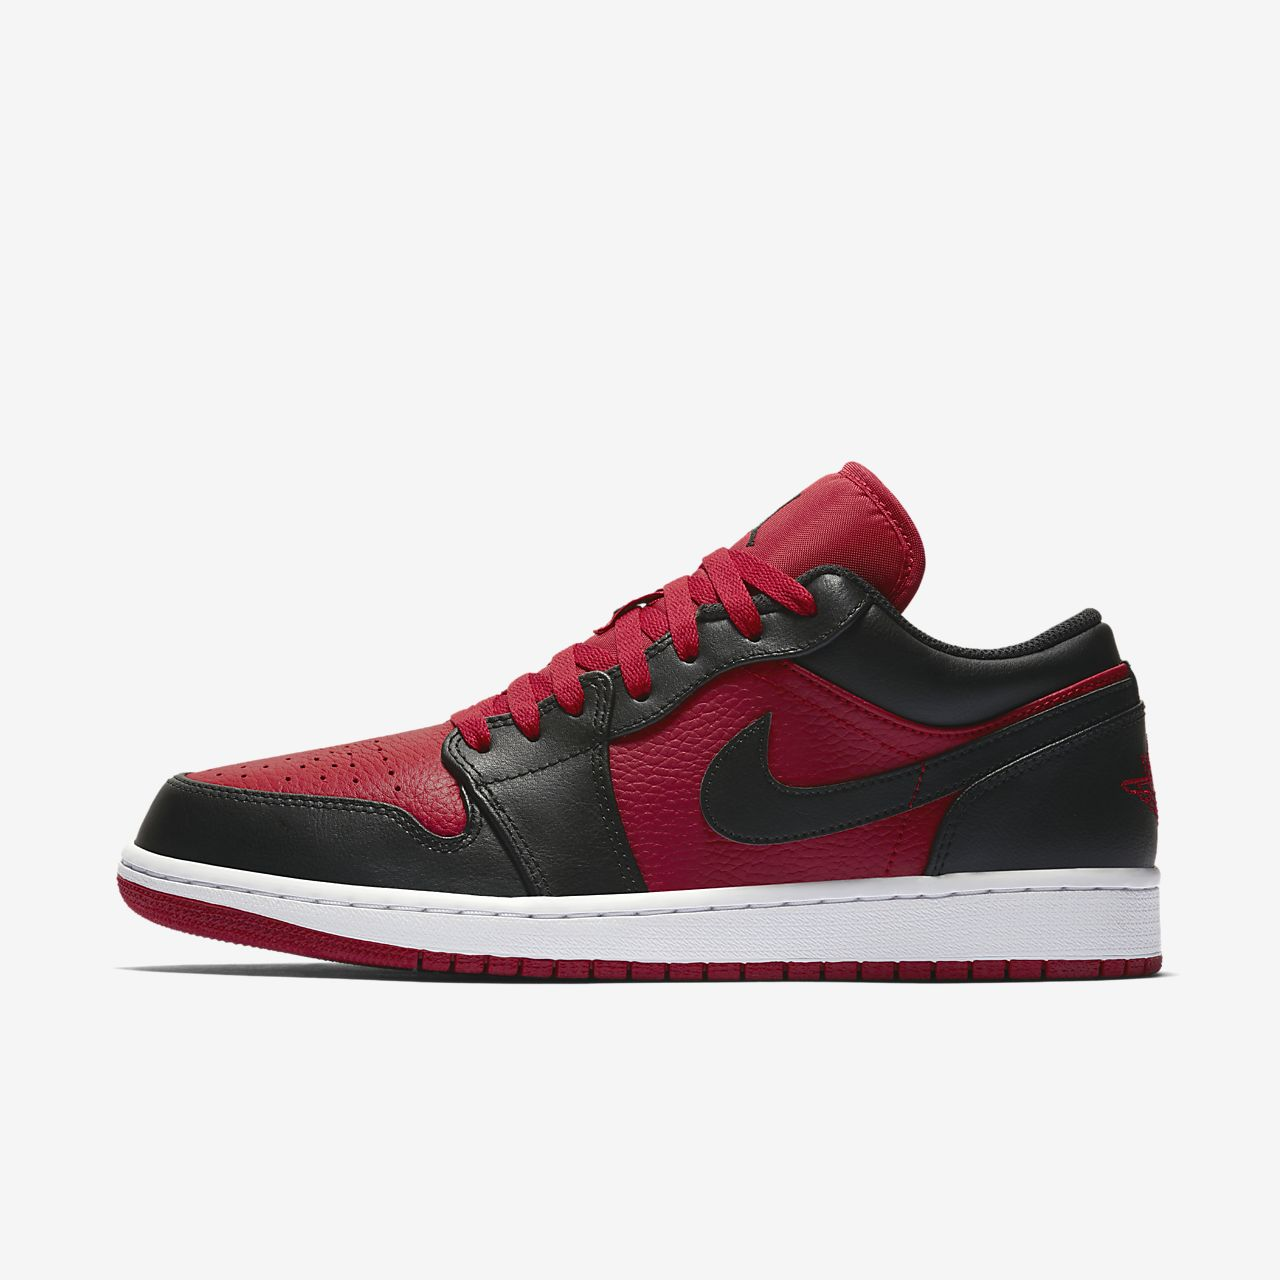 wholesale dealer 7f6a3 28e74 ... new zealand air jordan 1 low herrenschuh 5b232 eee46